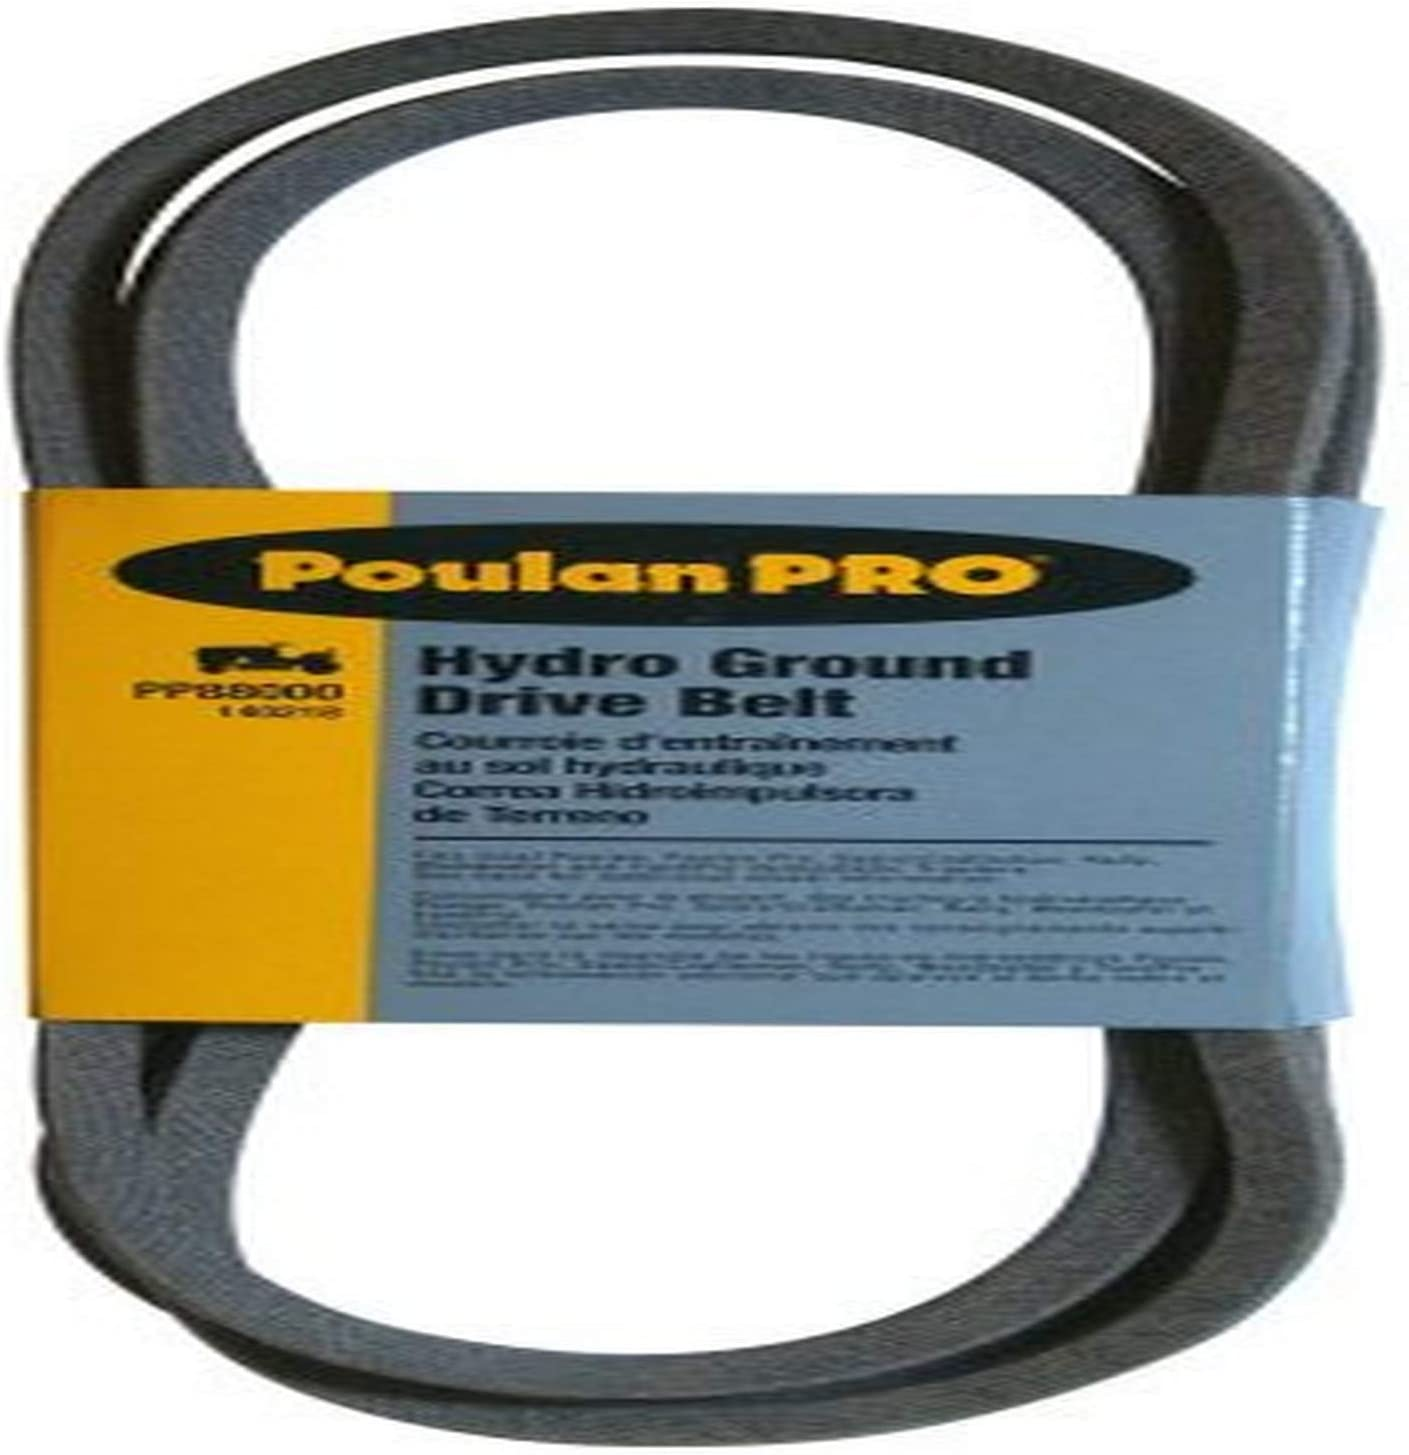 Poulan Pro Yard Tractor 2006 and Newer Hydro Ground Drive Mower Belt PP88000